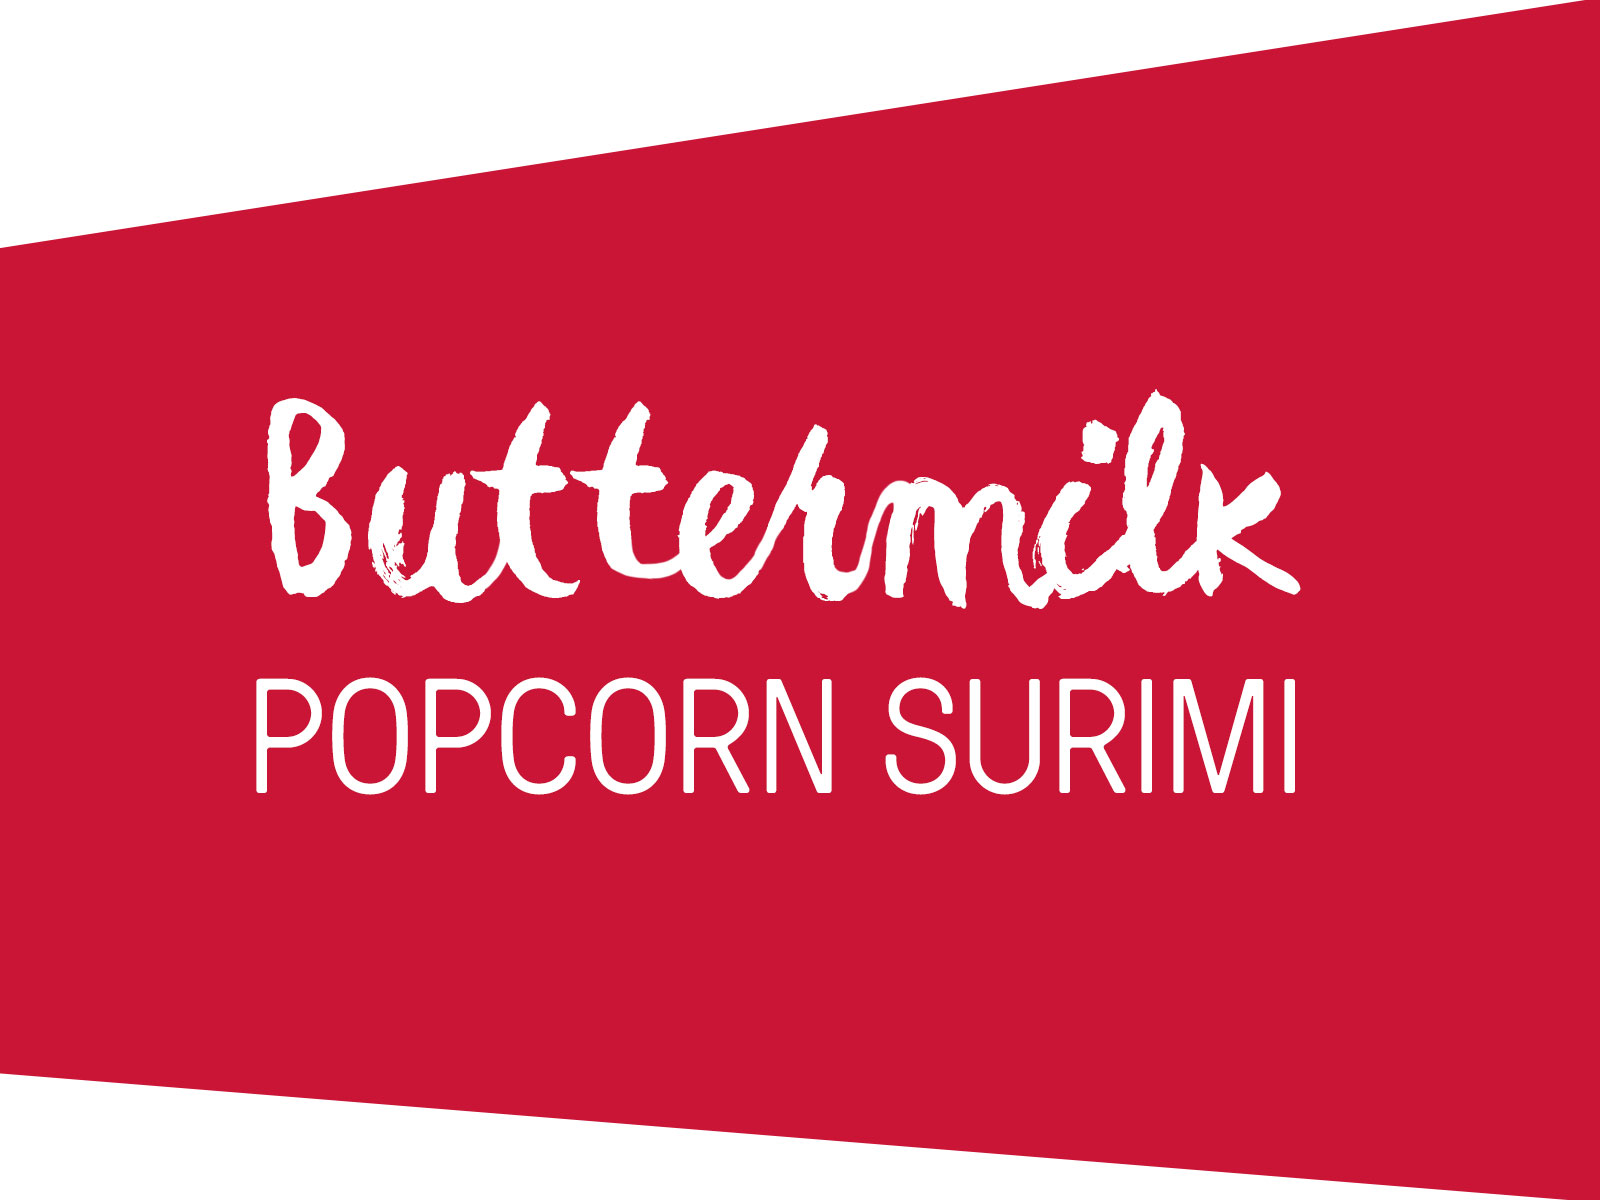 SEA LEGS® Buttermilk Popcorn Surimi